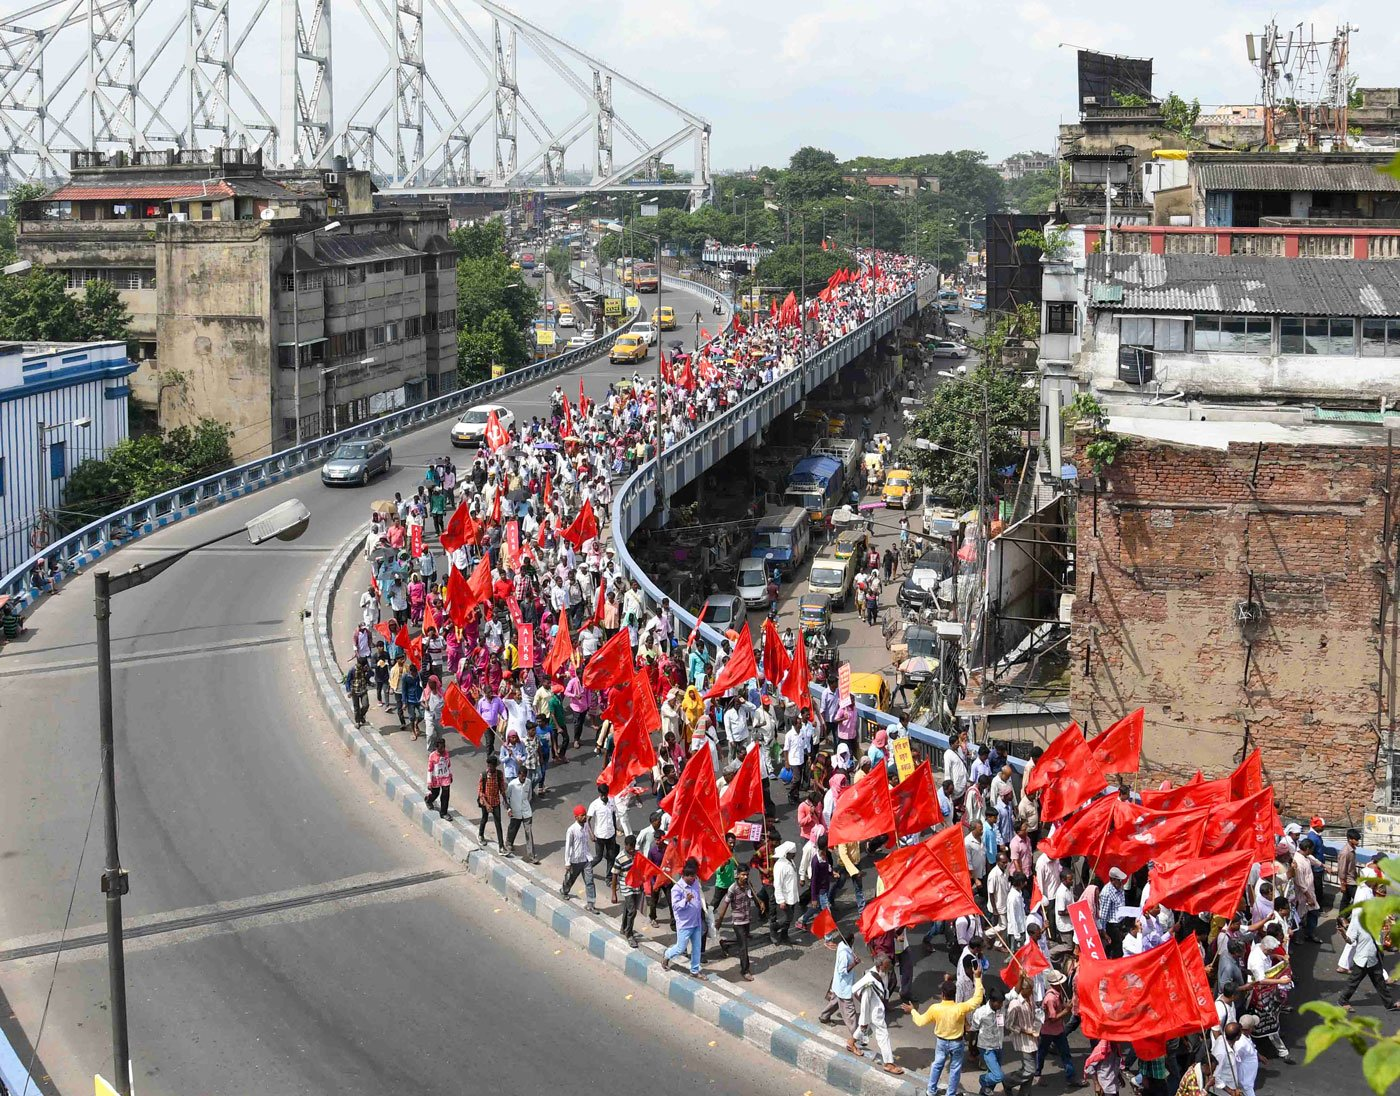 Rally organised by the AIKS-AIAWU (All India Kisan Sabha- All India Agricultural Workers Union)